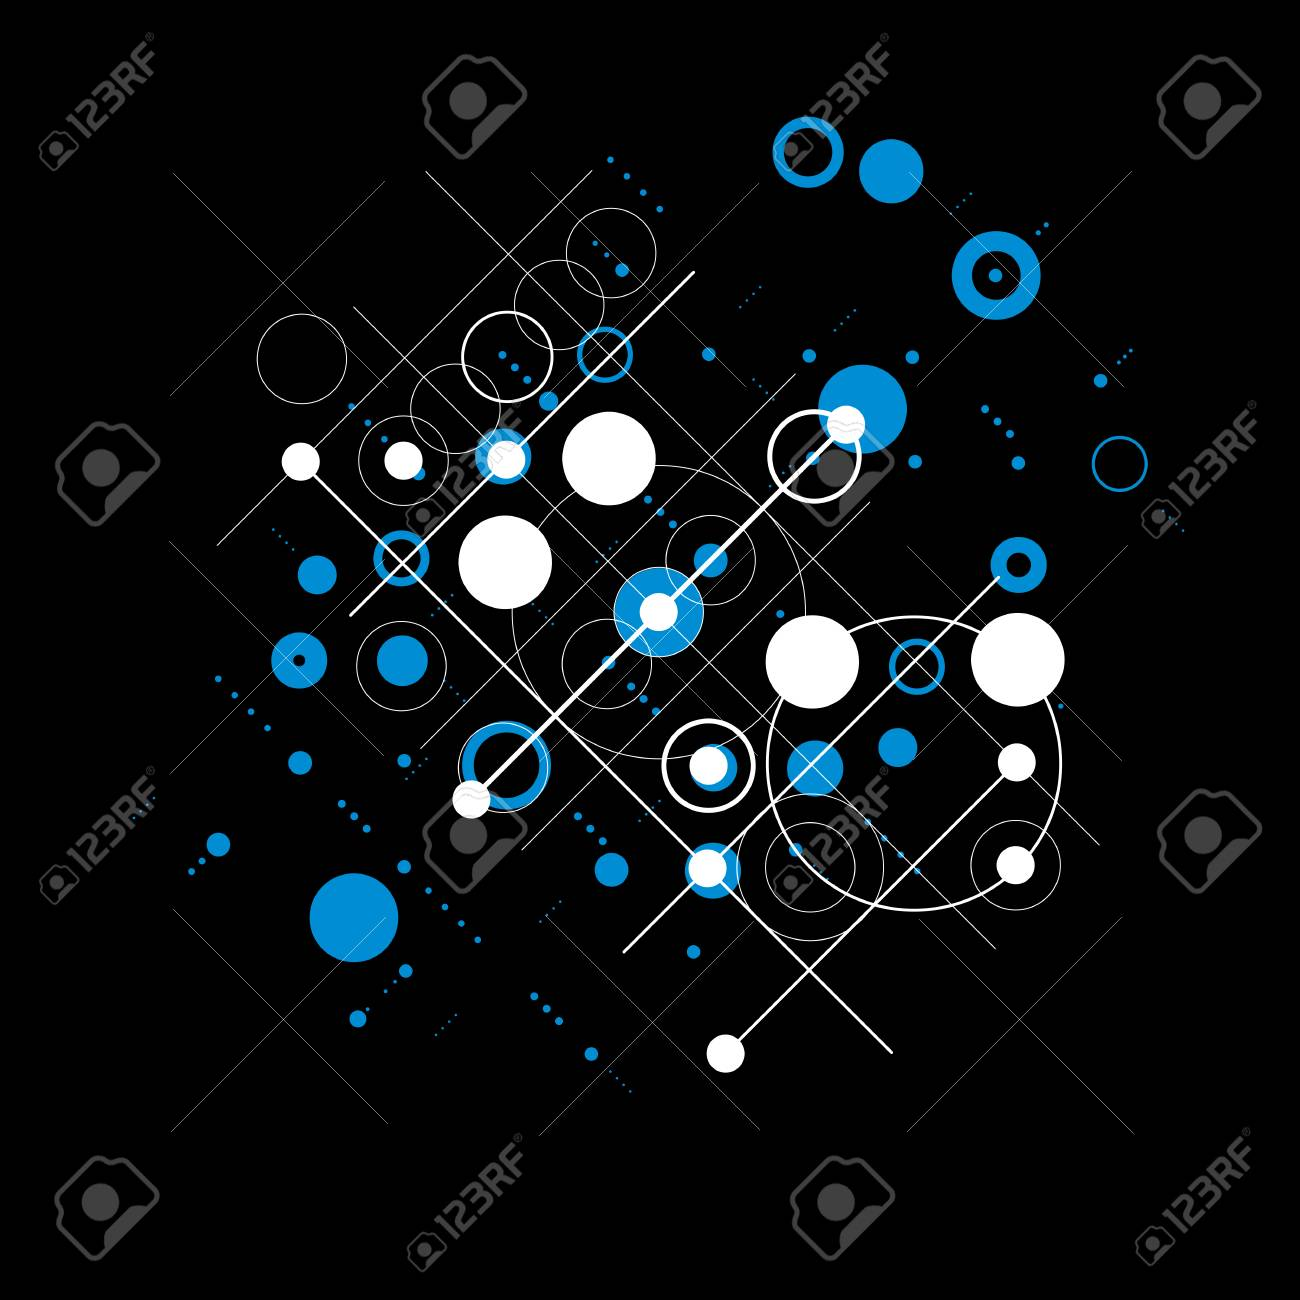 Bauhaus Retro Wallpaper Blue And Black Art Vector Background